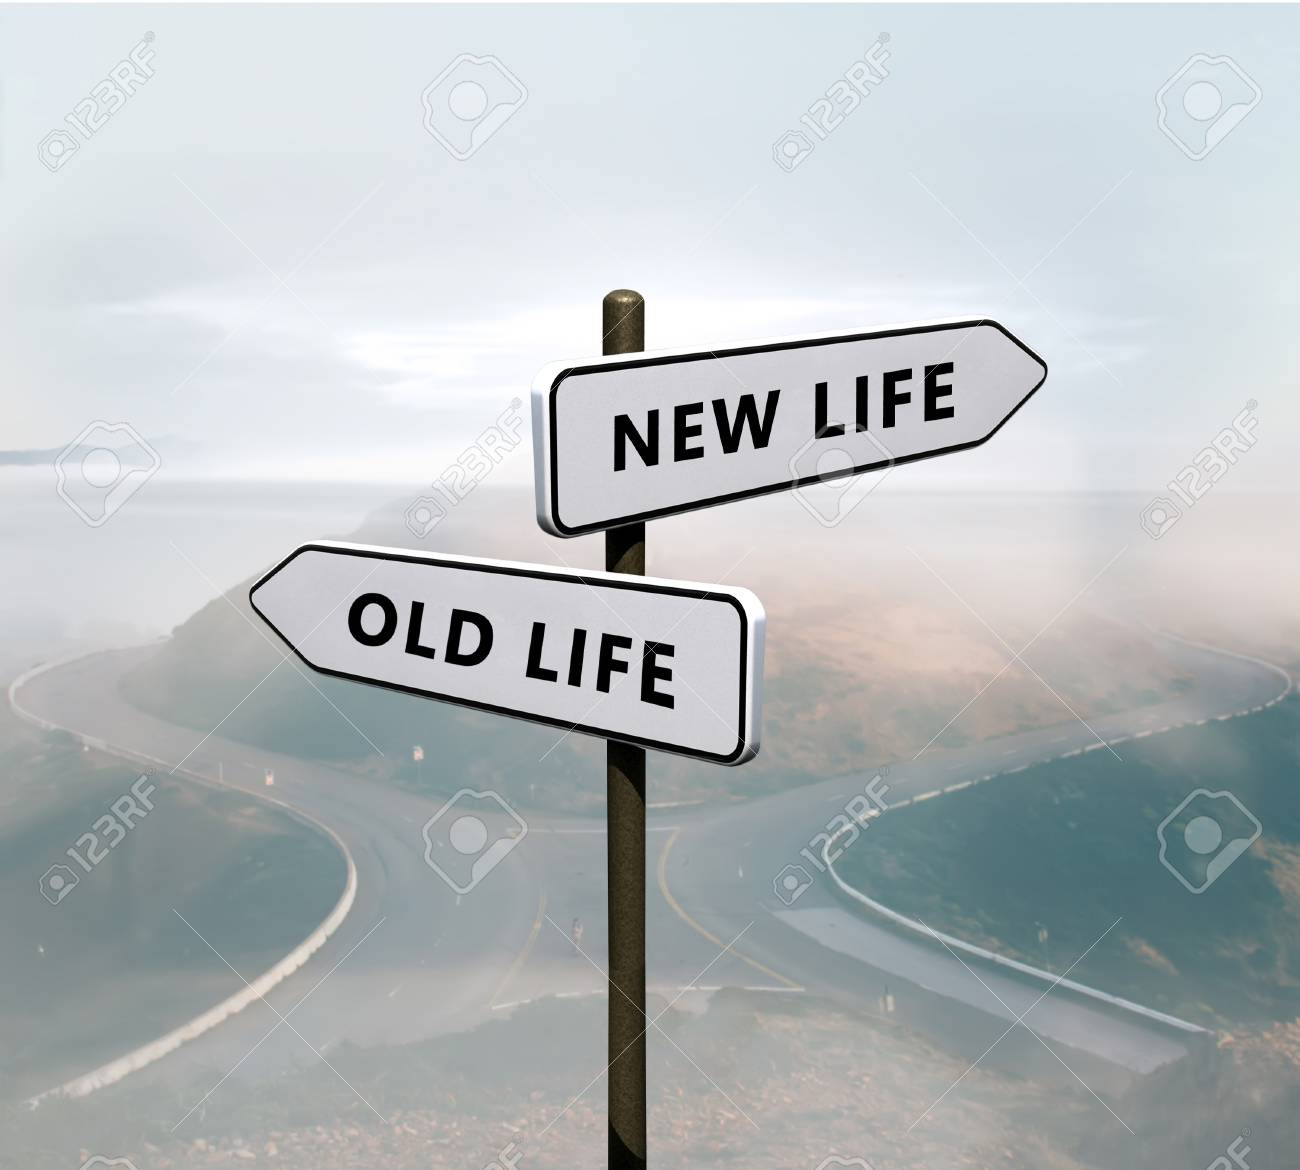 New life vs old life sign - 114746389